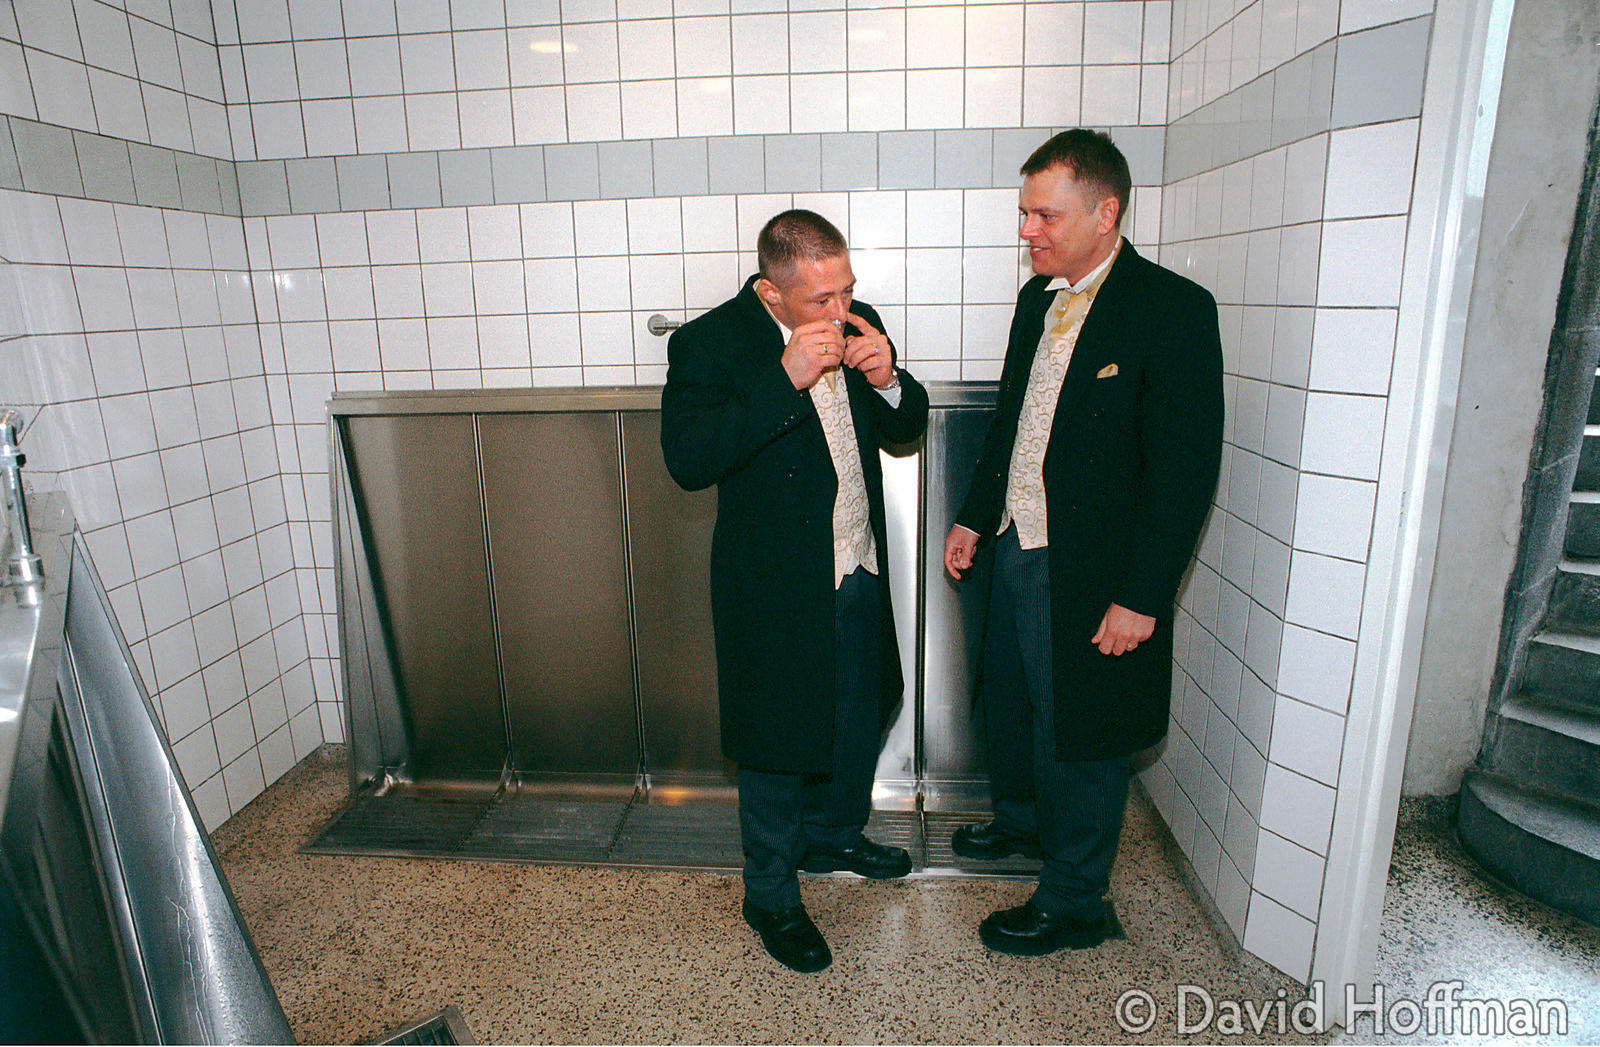 Newly wed gay couple take a quick snort of cocaine in the bogs